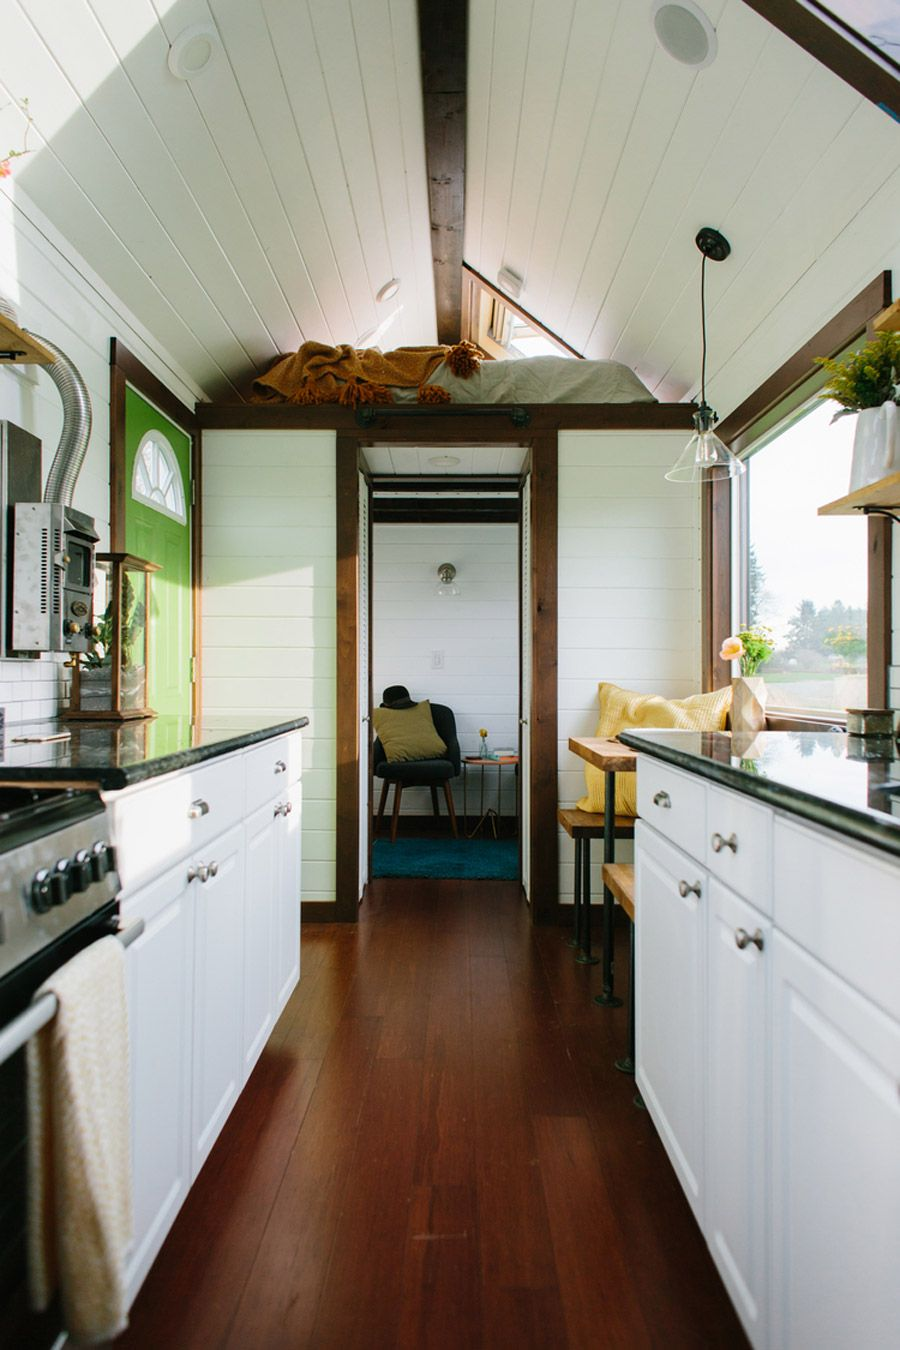 17 Best images about MY TINY HOUSE ideas on Pinterest Tiny homes